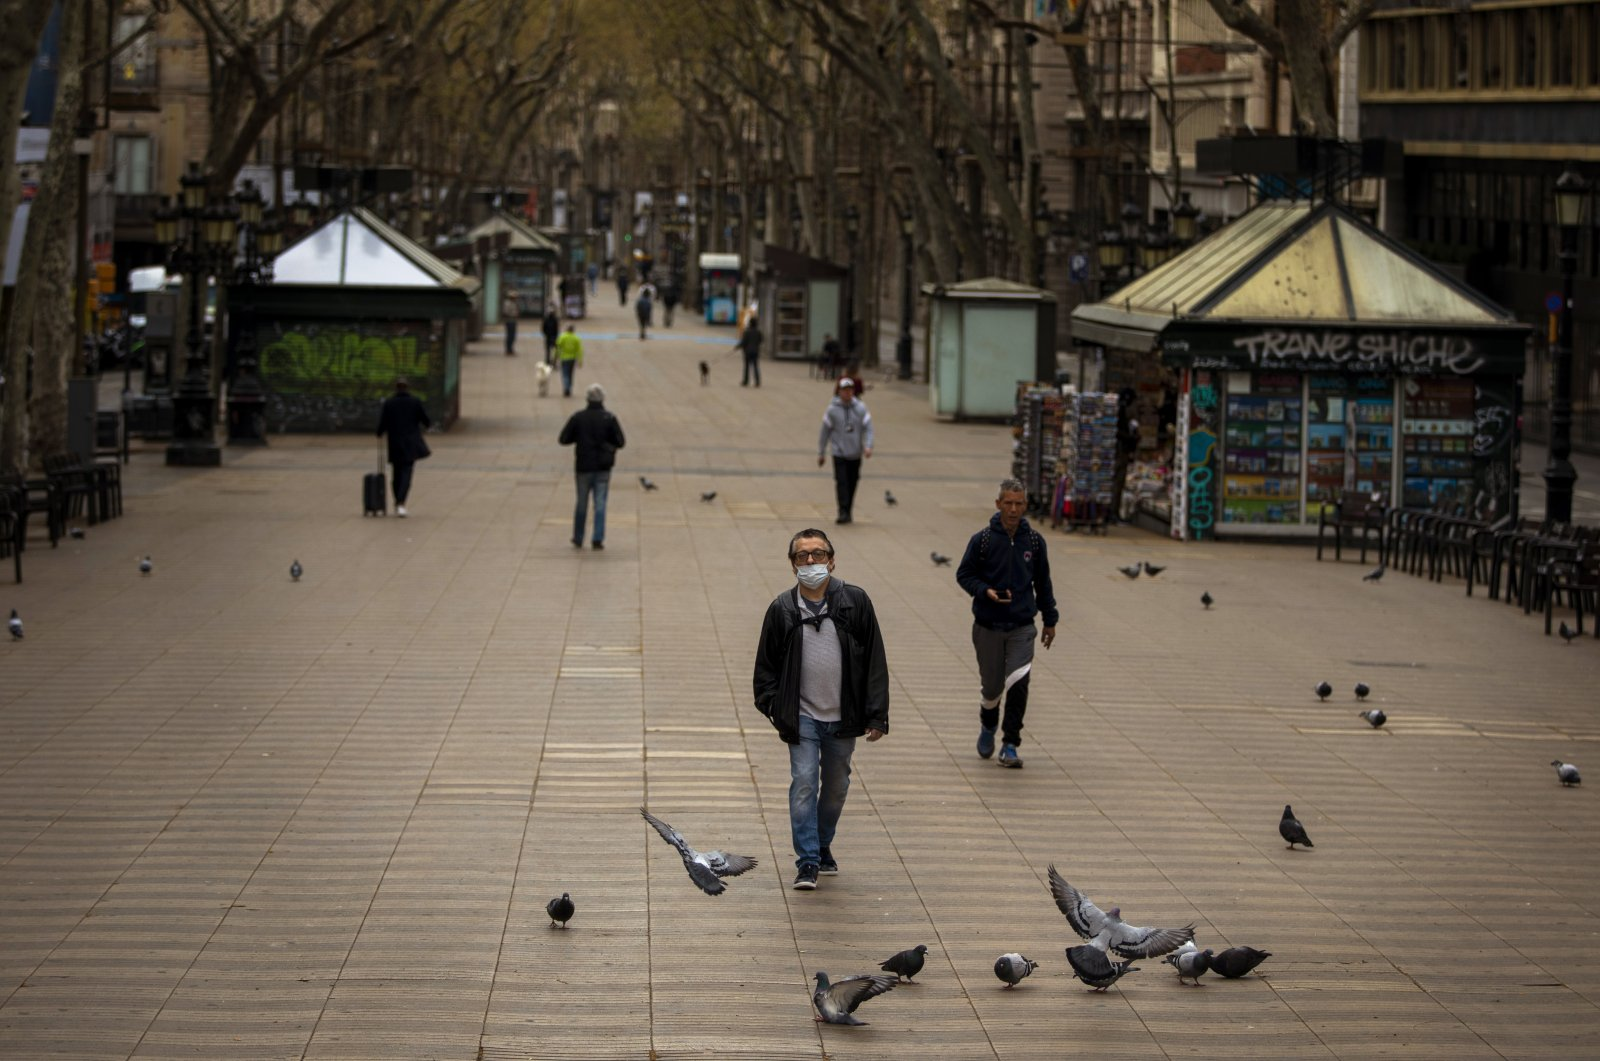 People walk along La Ramblas in Barcelona, Spain, March 15, 2020. (AP Photo)